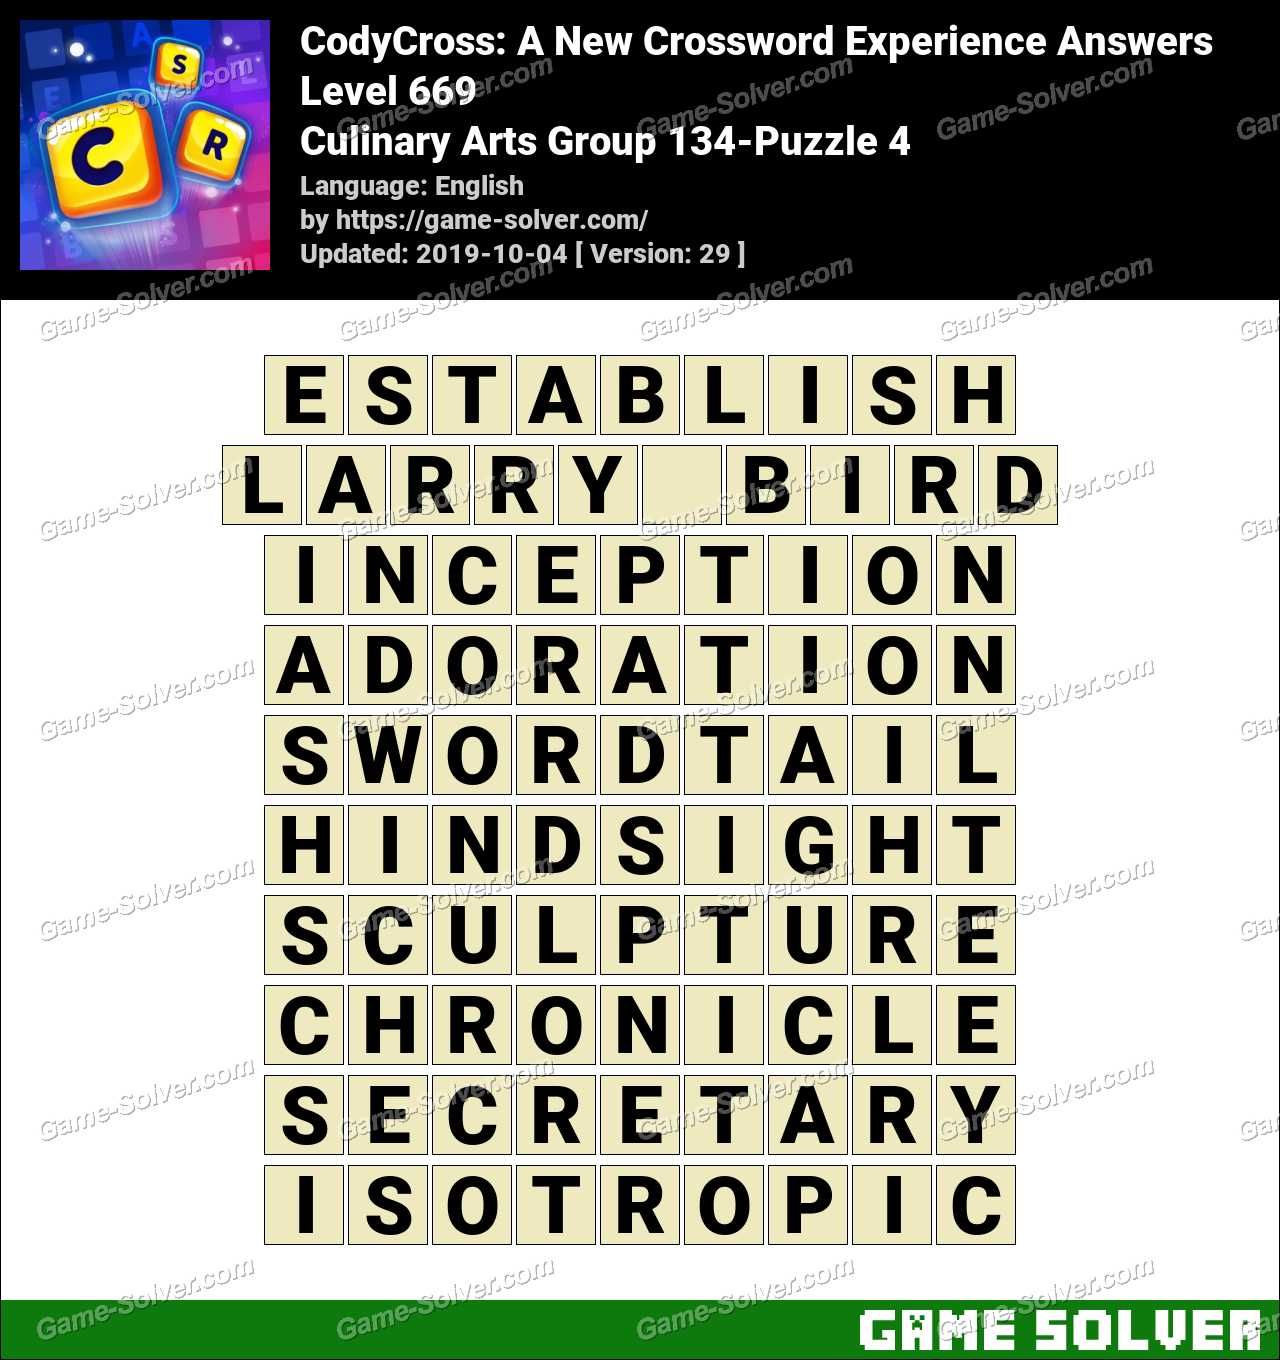 CodyCross Culinary Arts Group 134-Puzzle 4 Answers